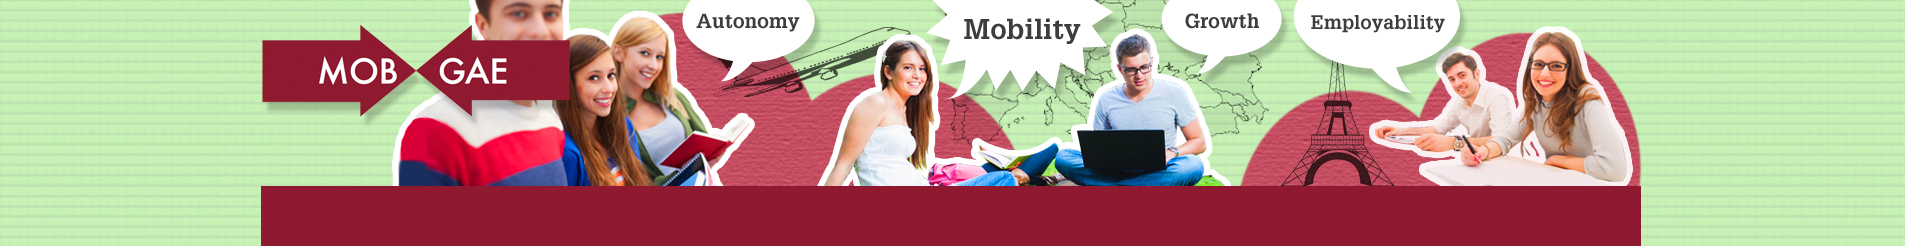 MOBility as a source of personal and professional Growth, Autonomy and Employability